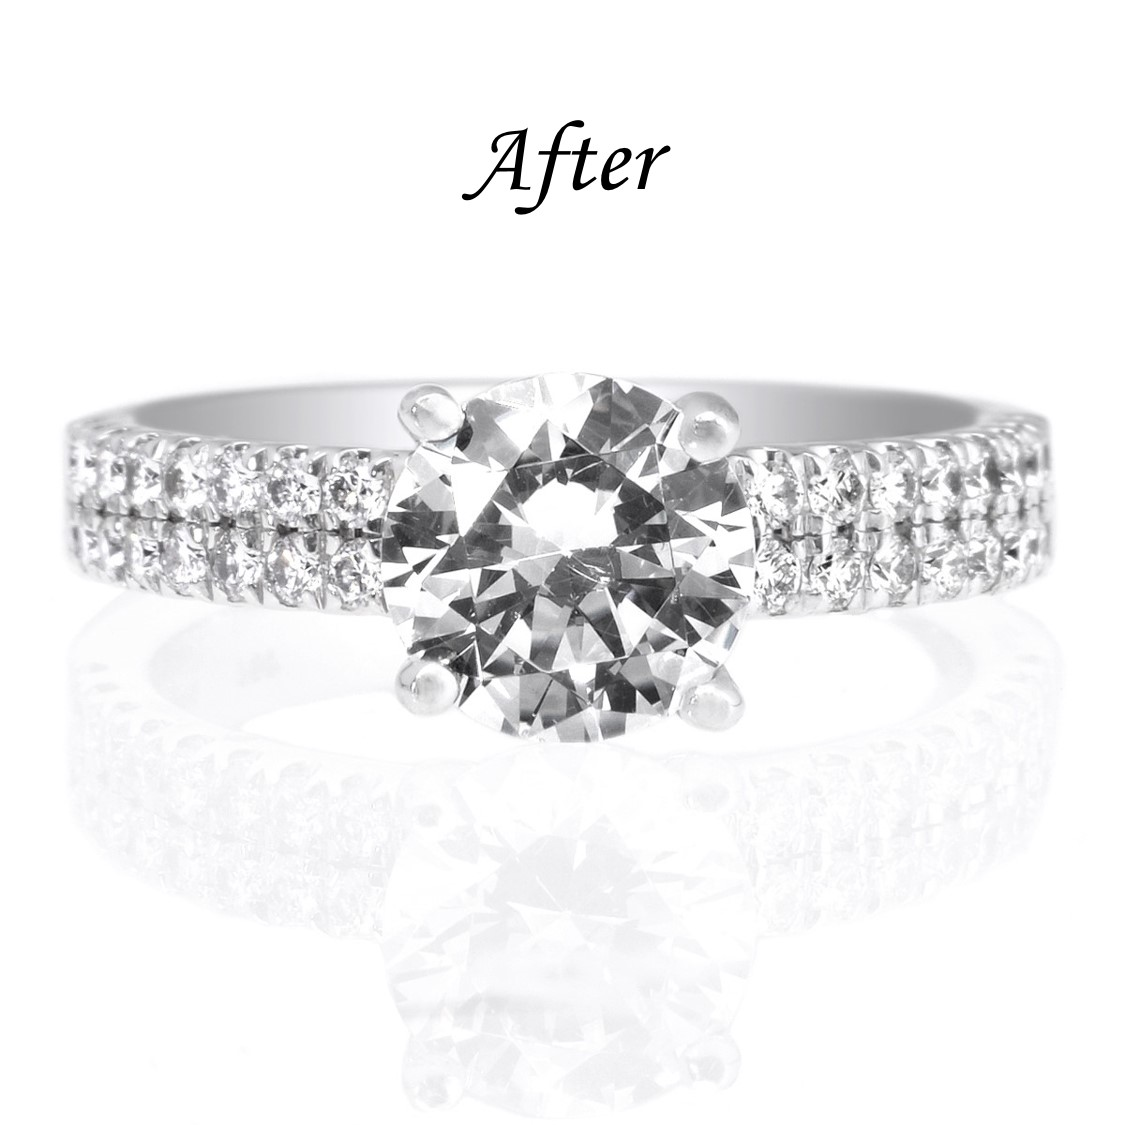 6 Ways To Reset Your Solitaire Engagement Ring - Add Diamonds to Band